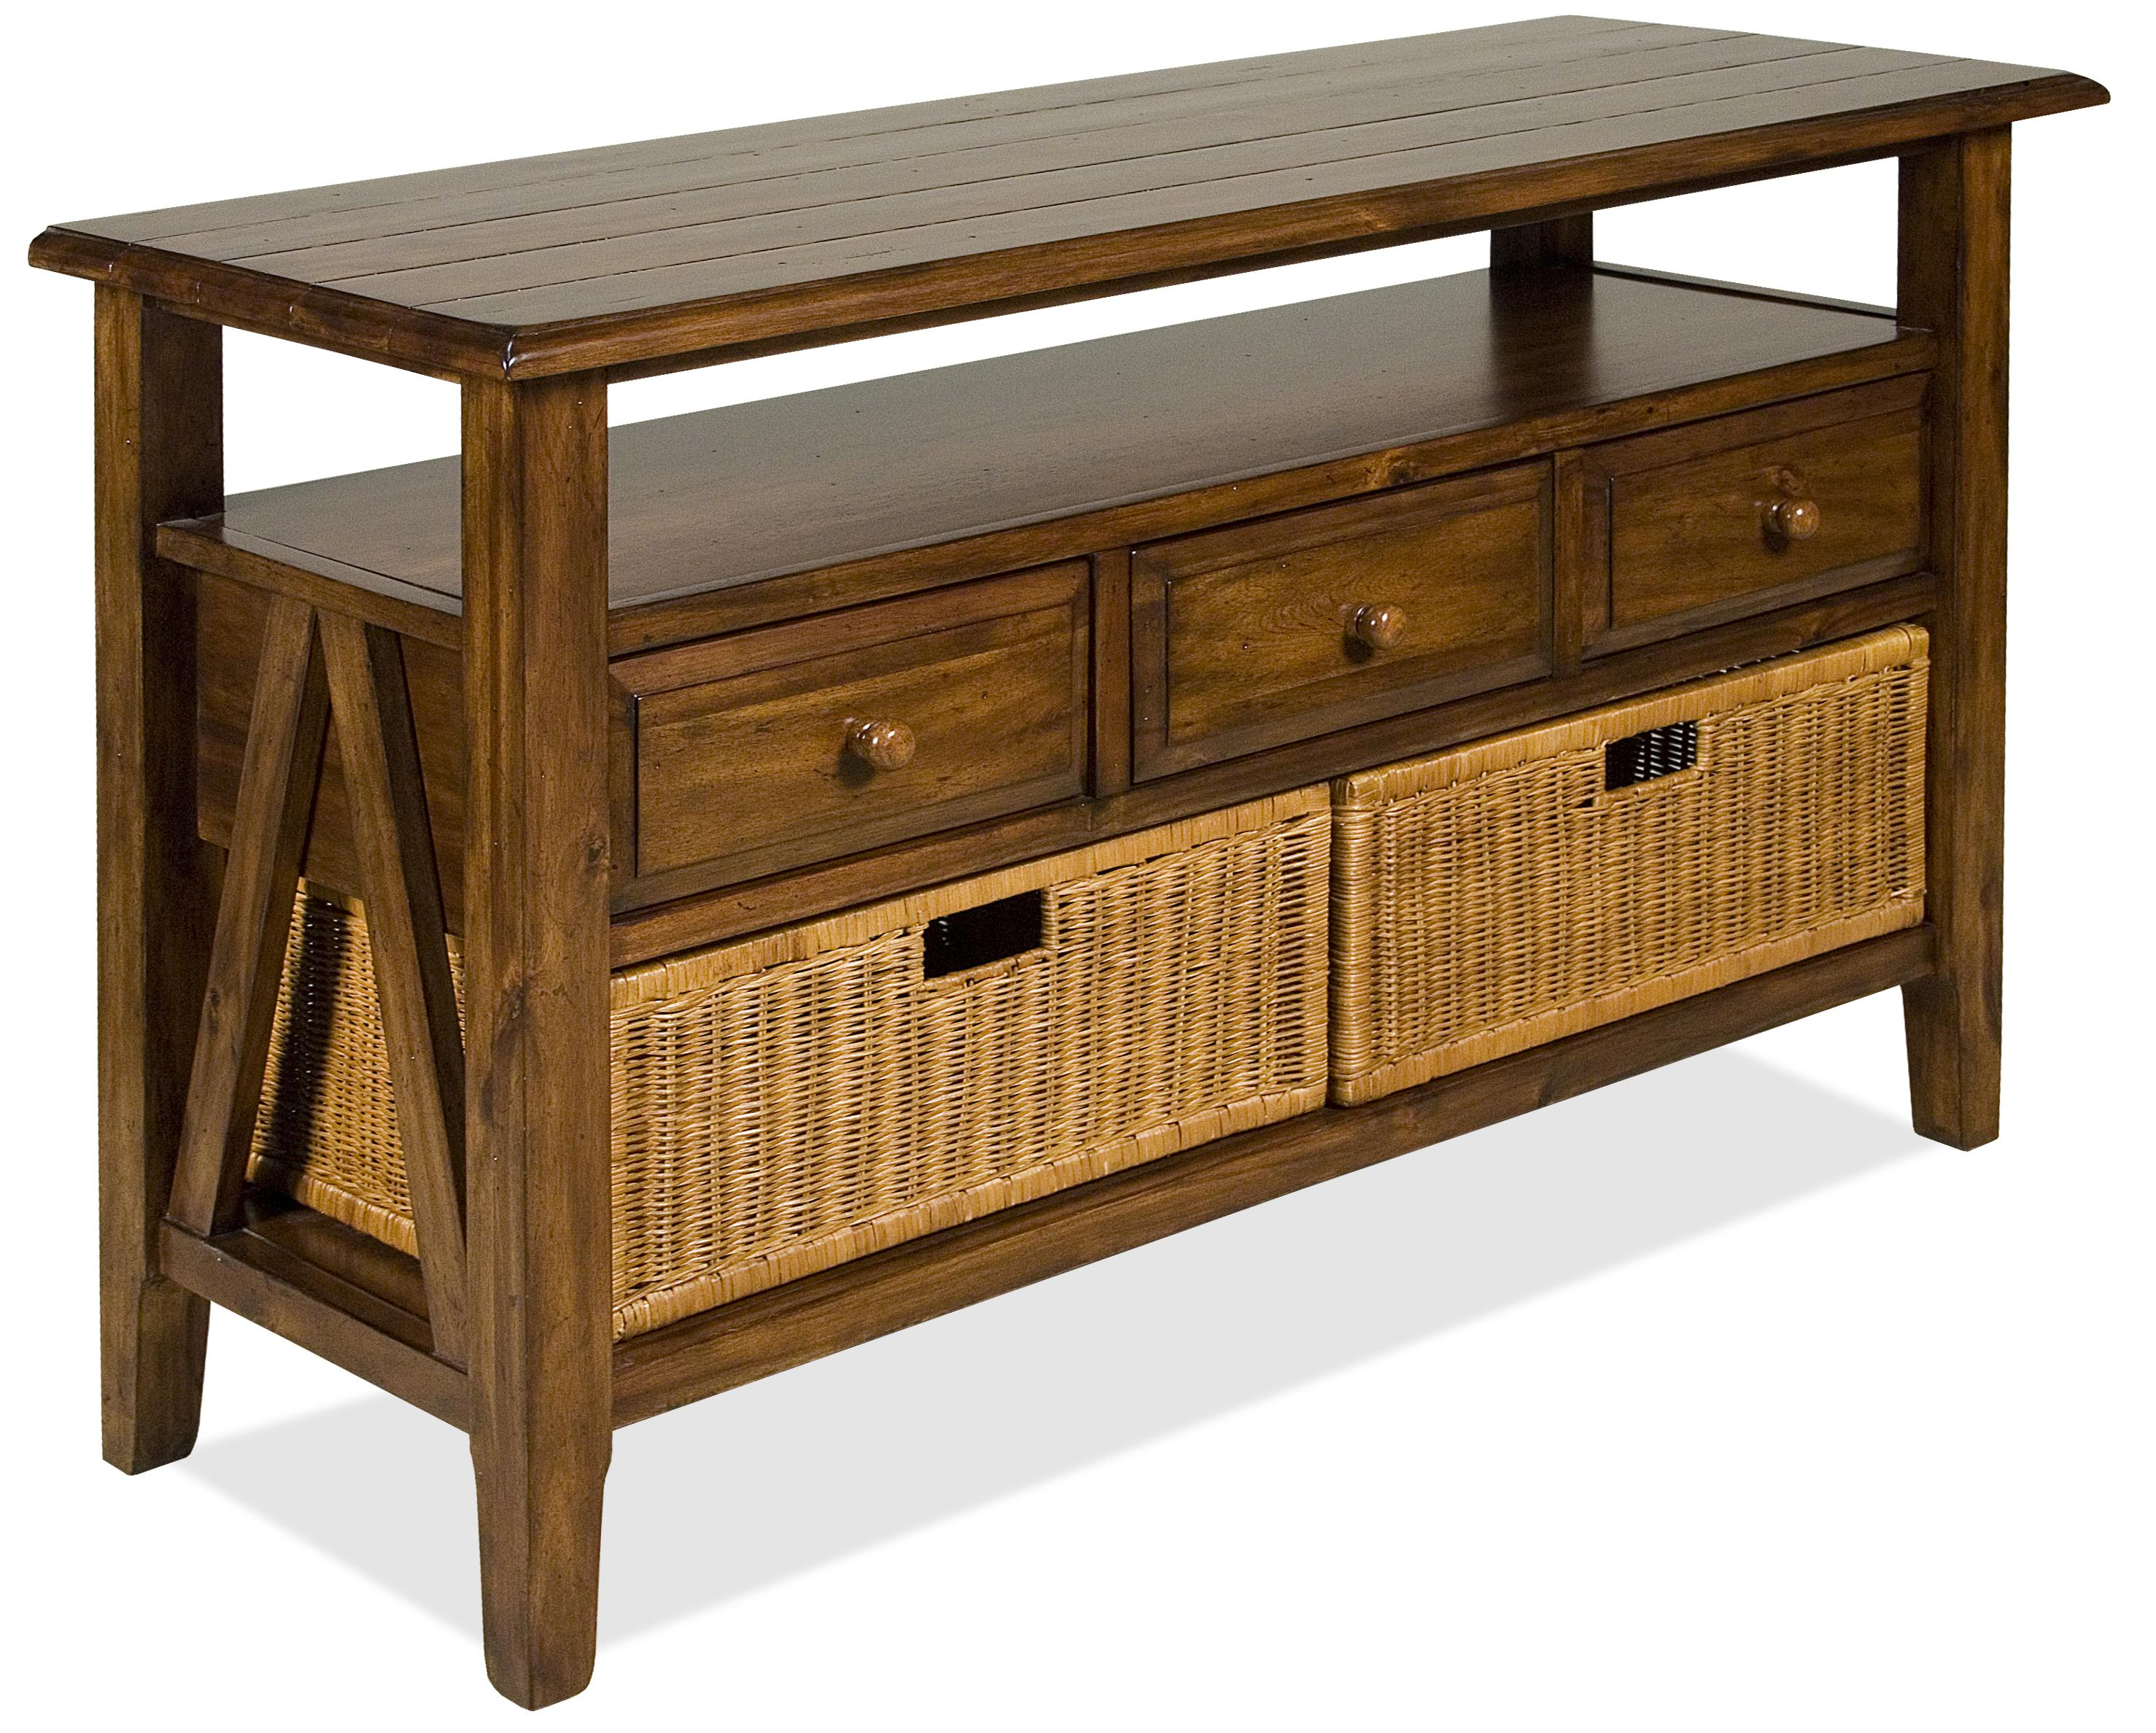 3 drawer console table with storage baskets by riverside Console tables with storage